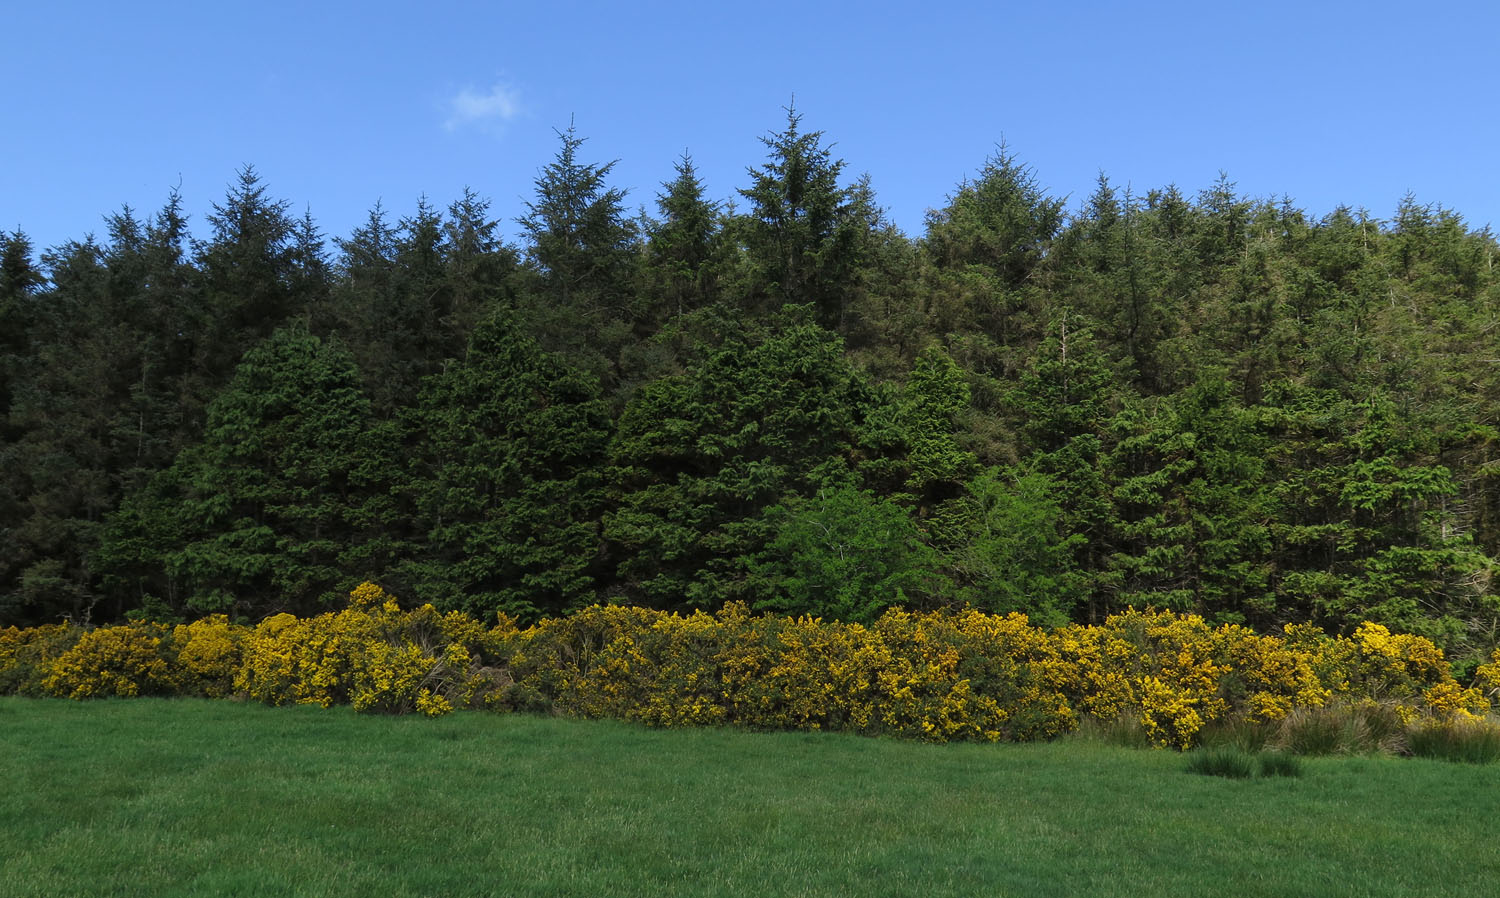 Ireland-Sights-And-Scenery-Trees-Gorse-Grass